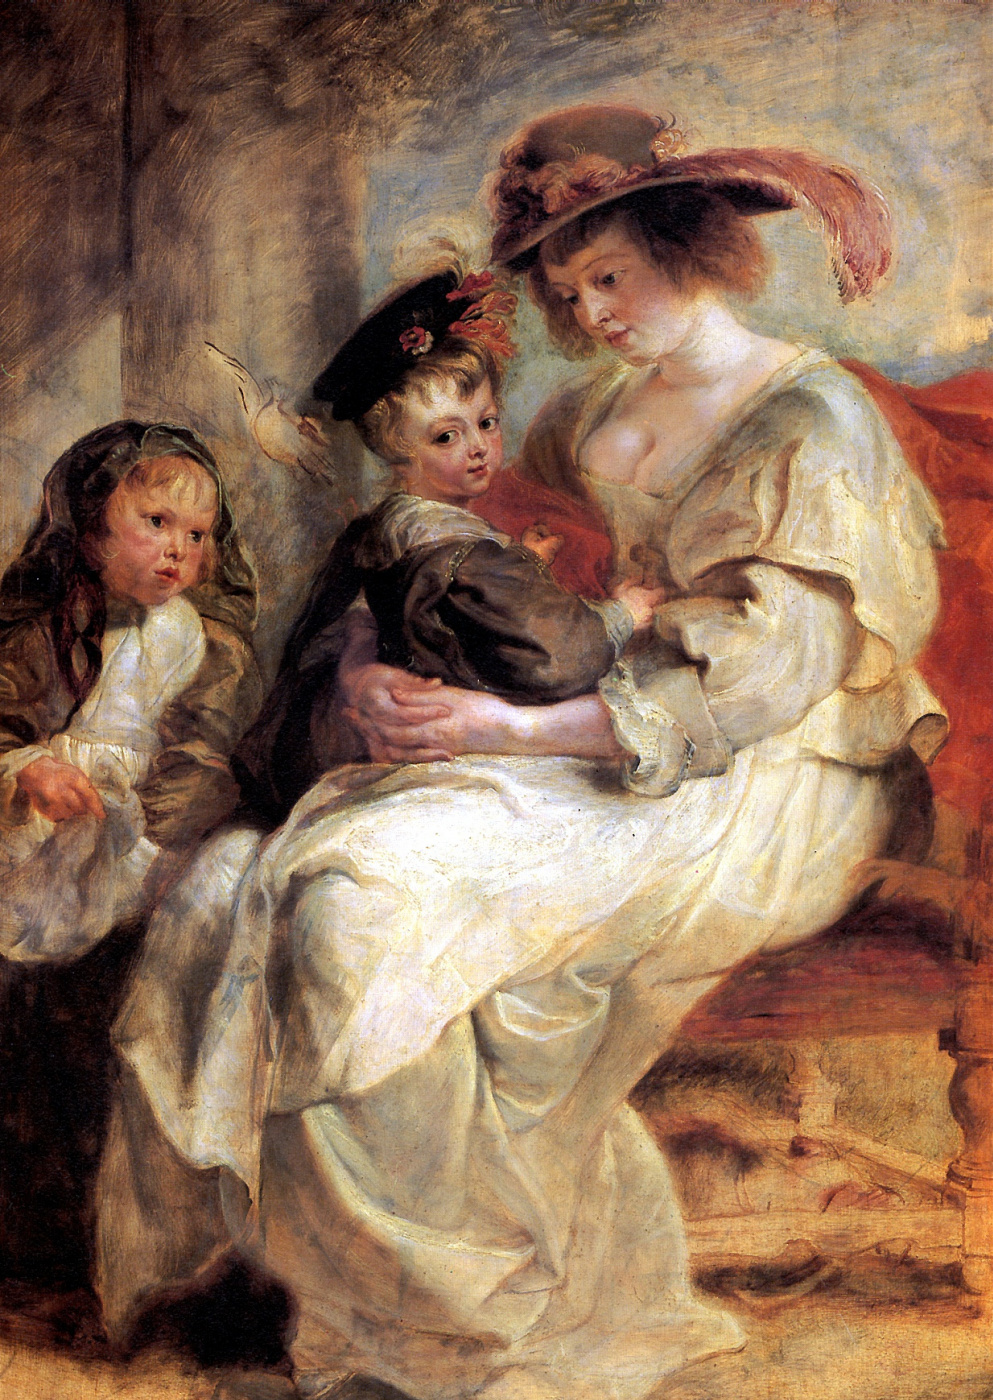 Peter Paul Rubens. Helena Fourment with children Claire-Jeanne and Francois